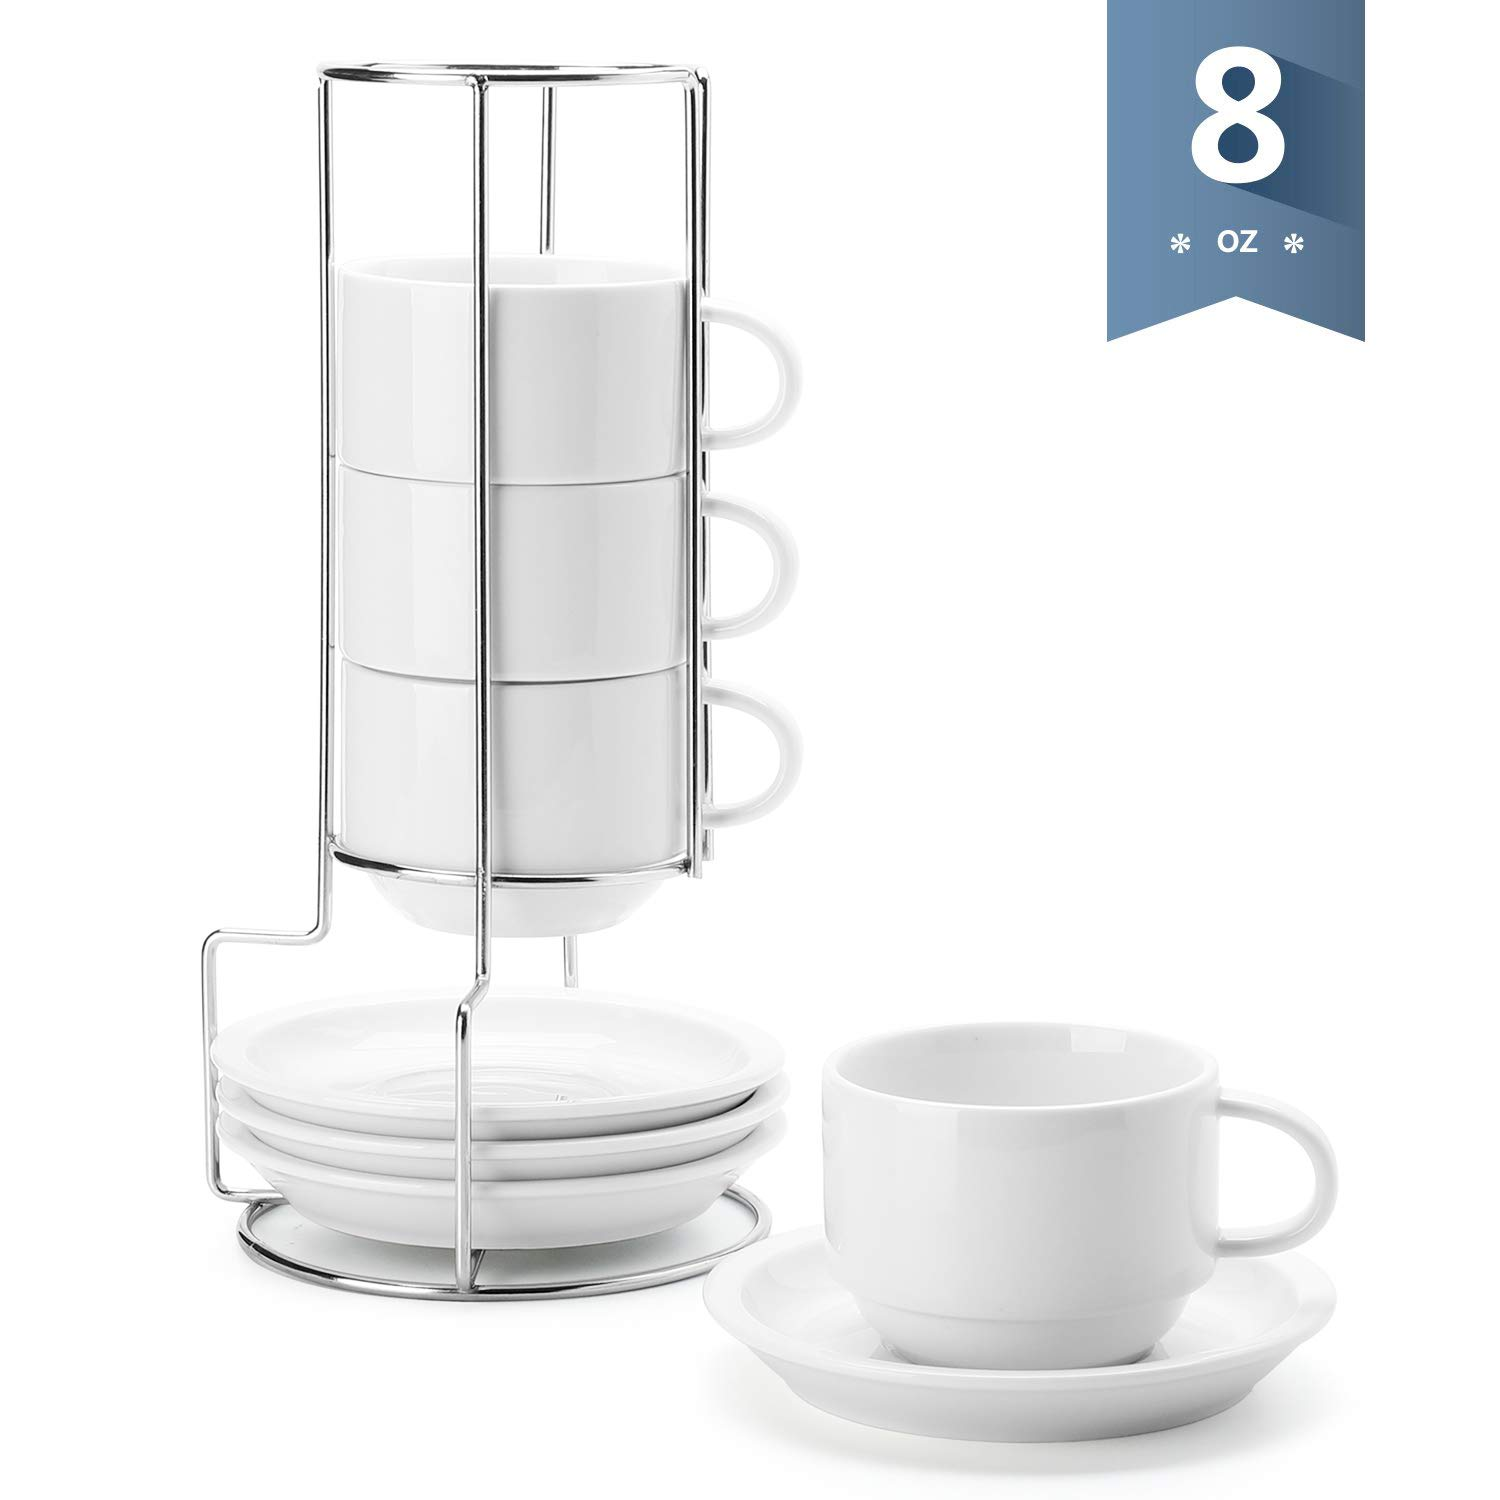 Sweese 406.101 Porcelain Stackable Cappuccino Cups with Saucers and Metal Stand - 8 Ounce for Specialty Coffee Drinks, Cappuccino, Latte, Americano and Tea - Set of 4, White